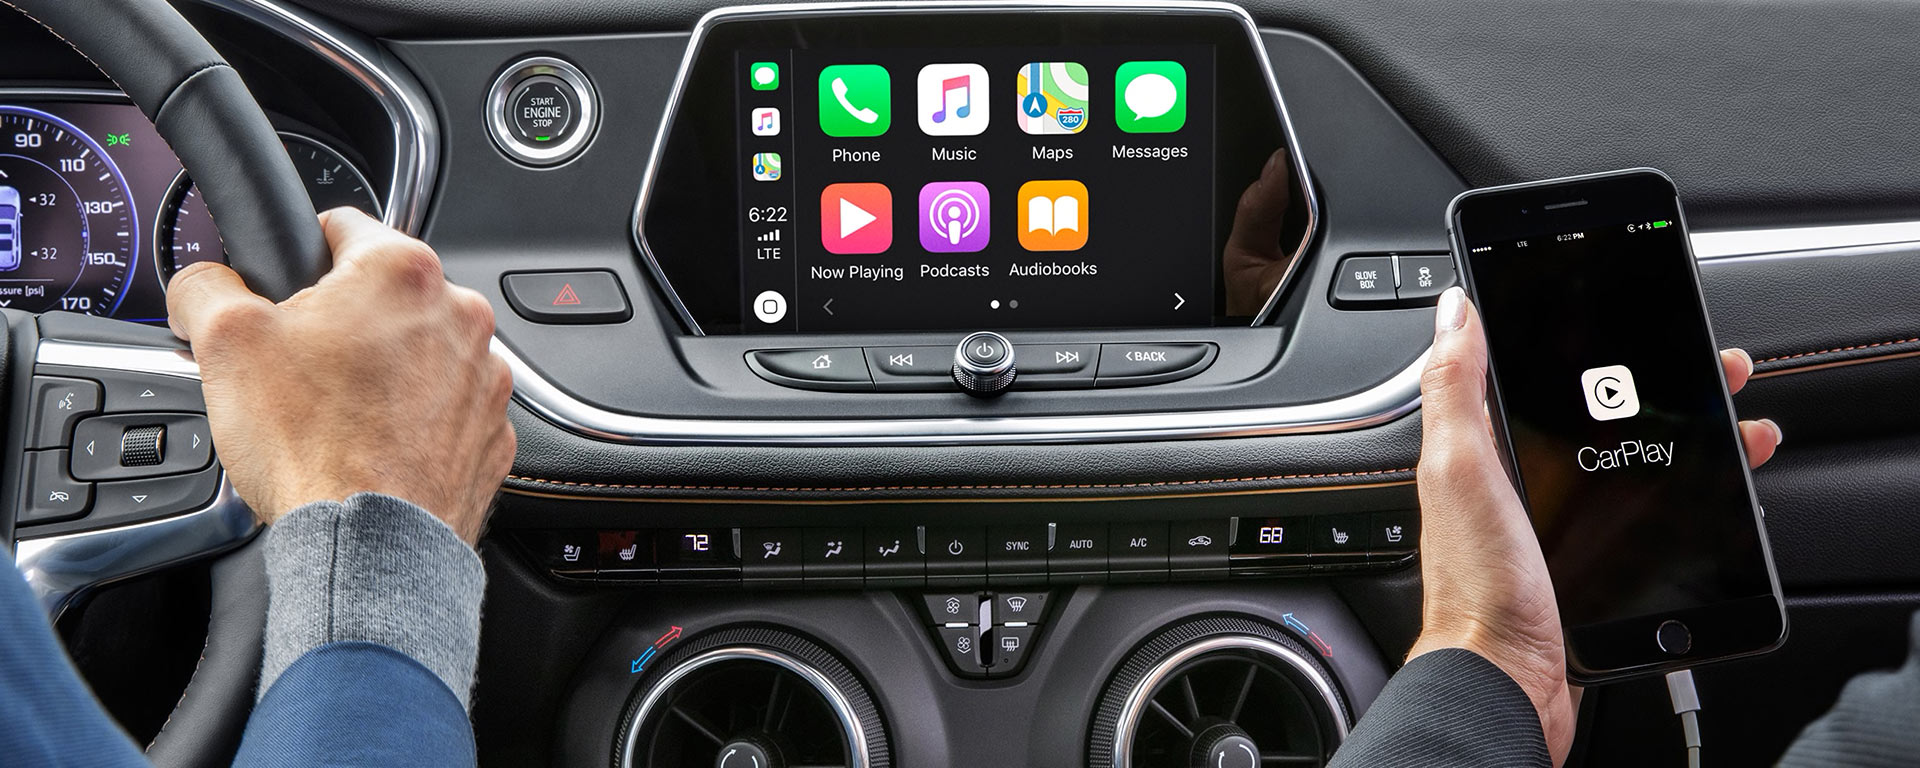 2020 Chevrolet Blazer Dashboard View With iPhone With CarPlay